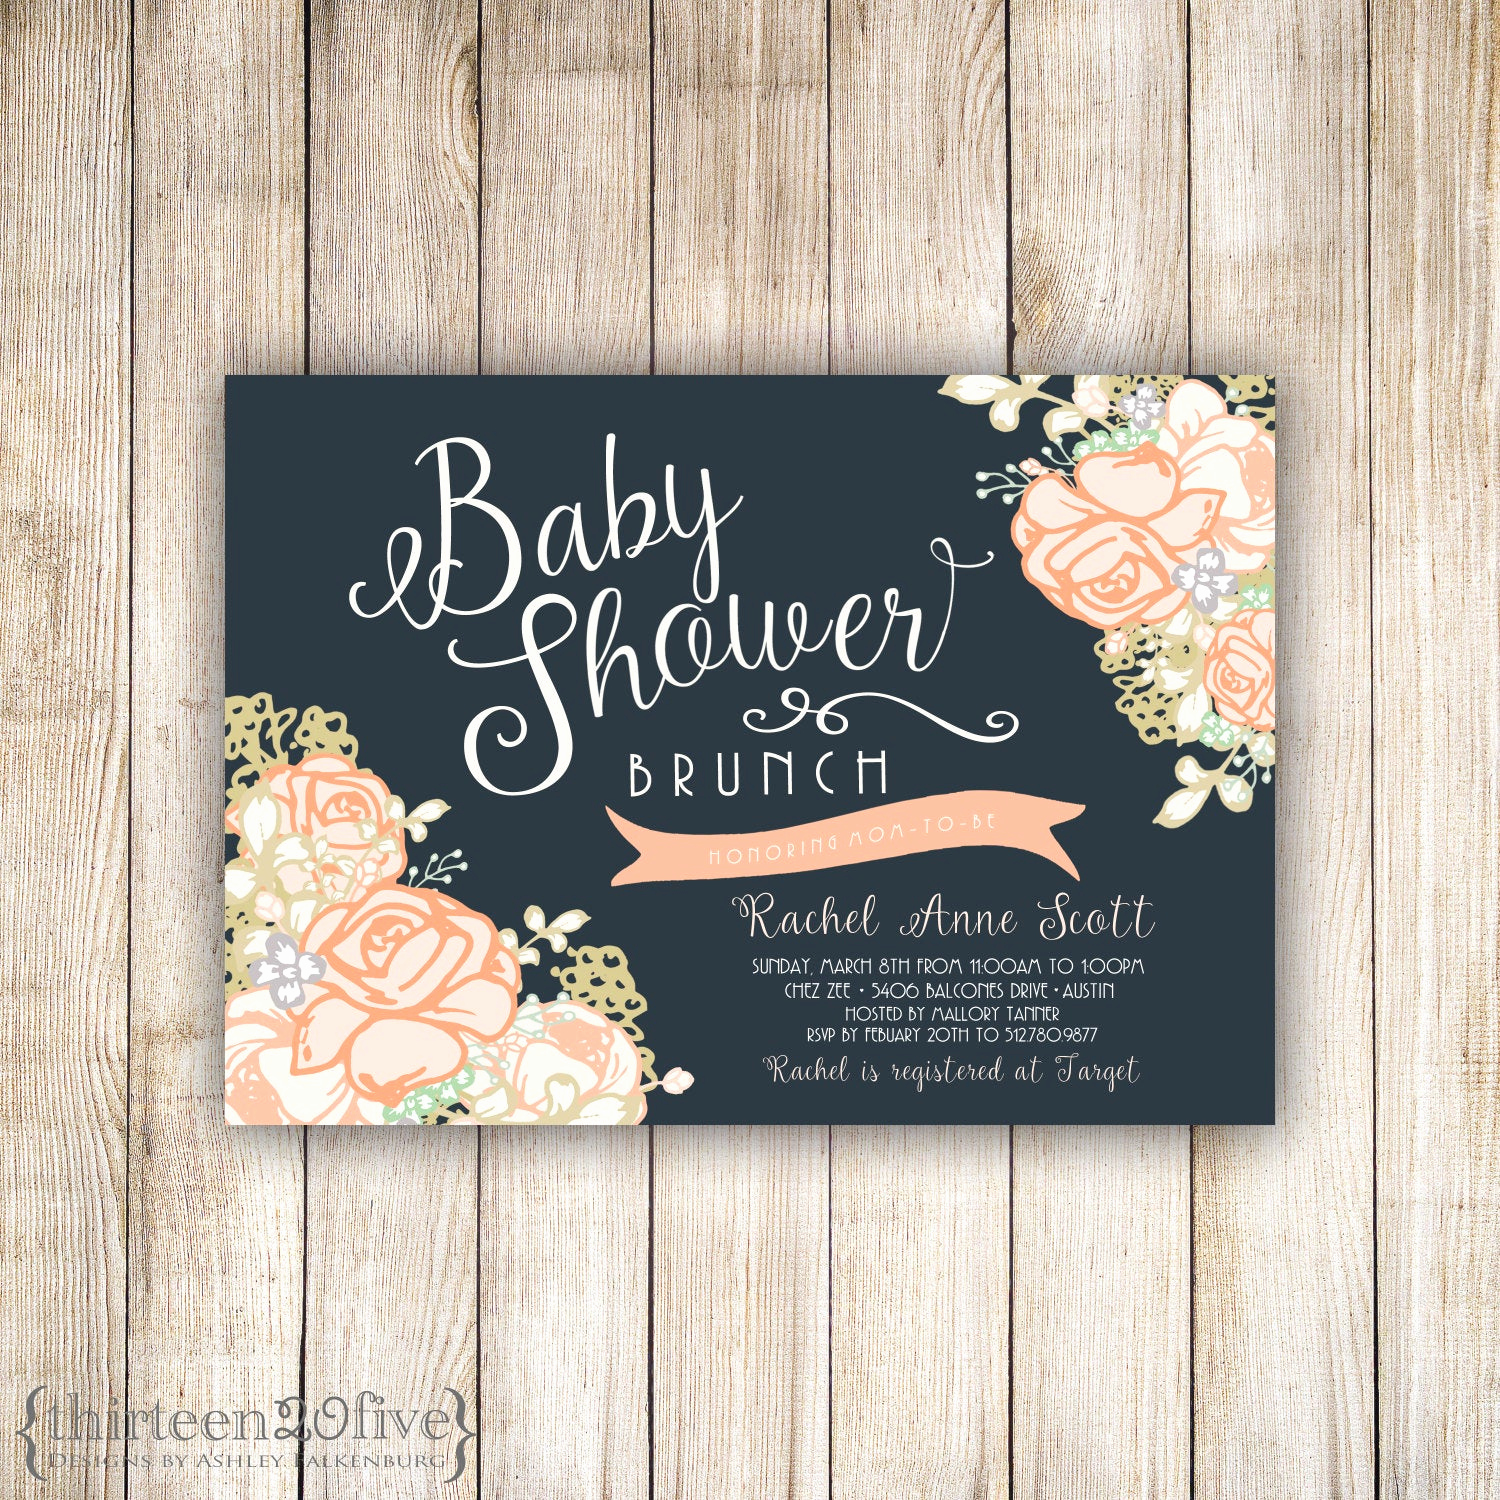 Baby Shower Brunch Invitation Wording Fresh Baby Shower Brunch Peachy Rose Custom Invitation 007